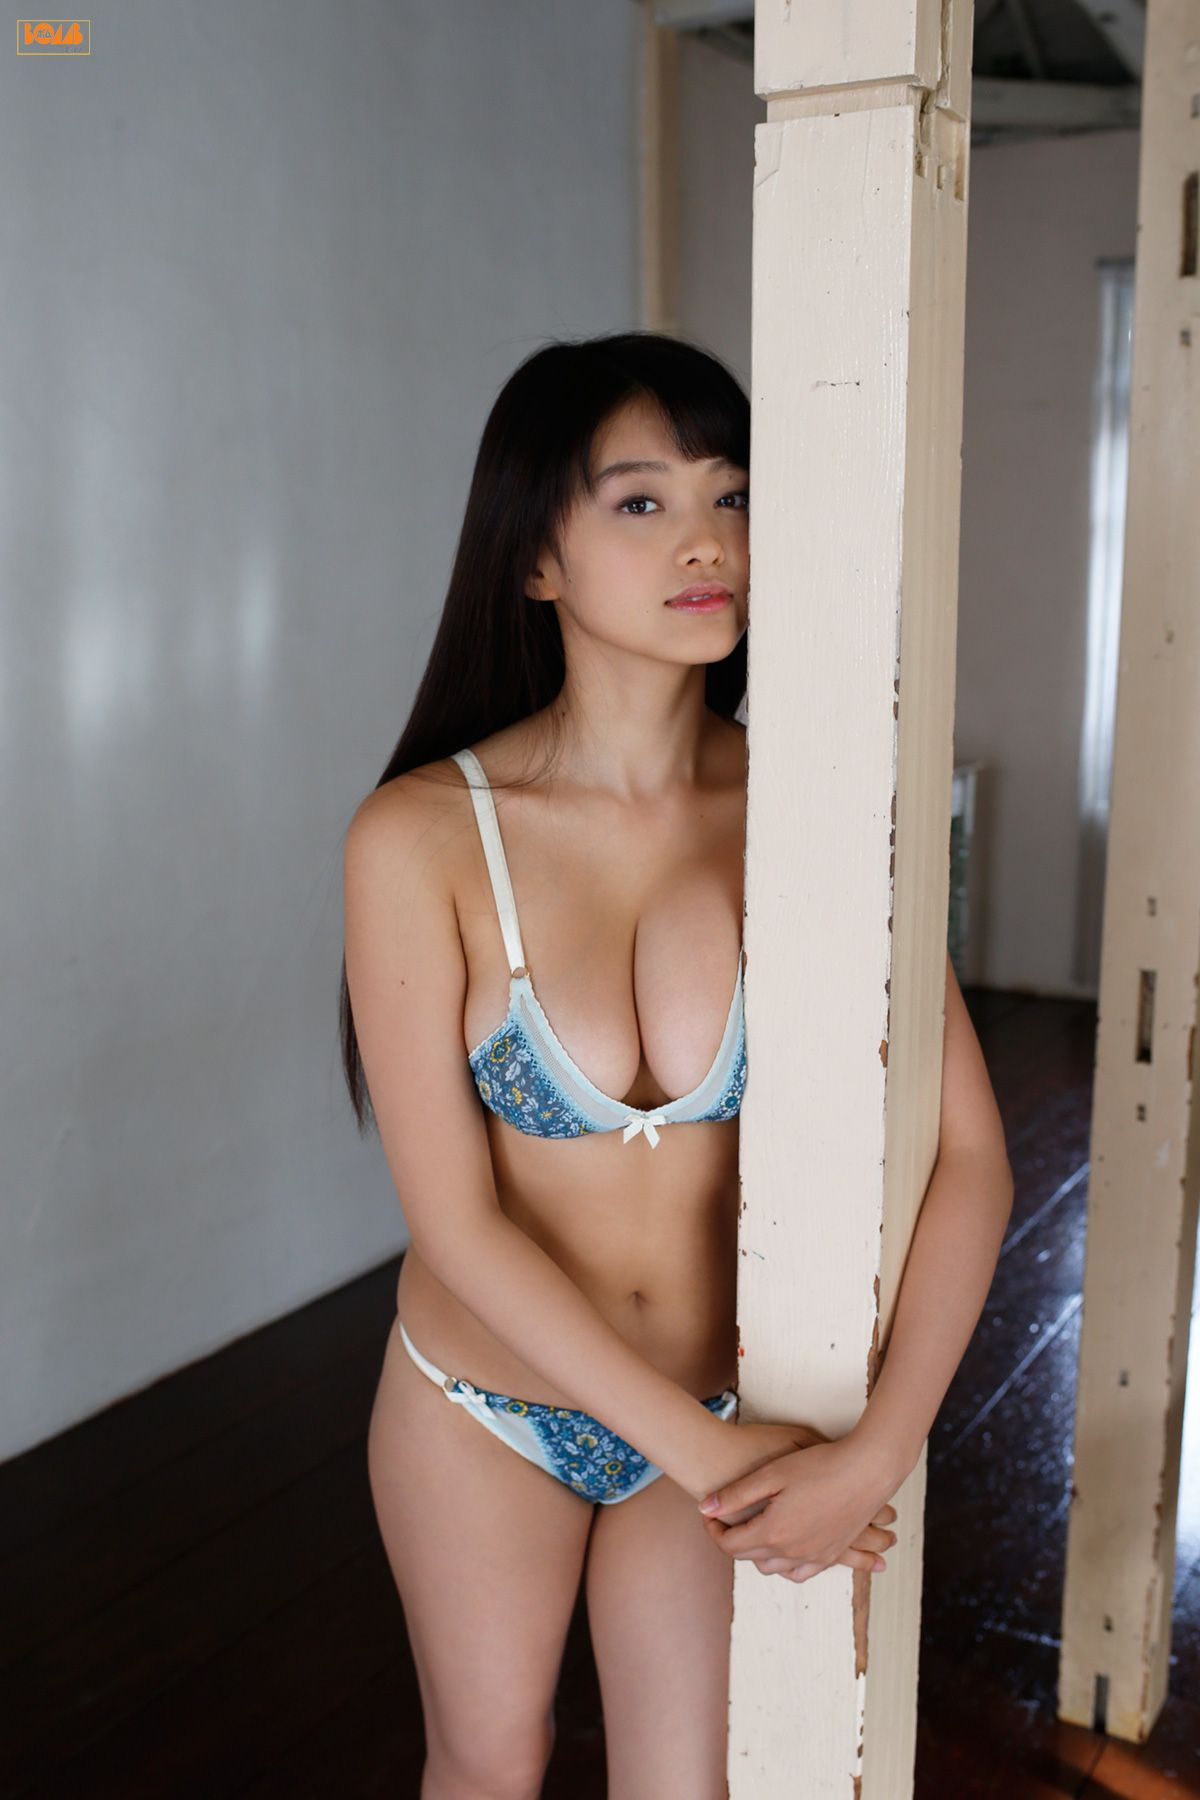 Porn Japanese Sex Naked Asian Girls XXX Nippon Videos